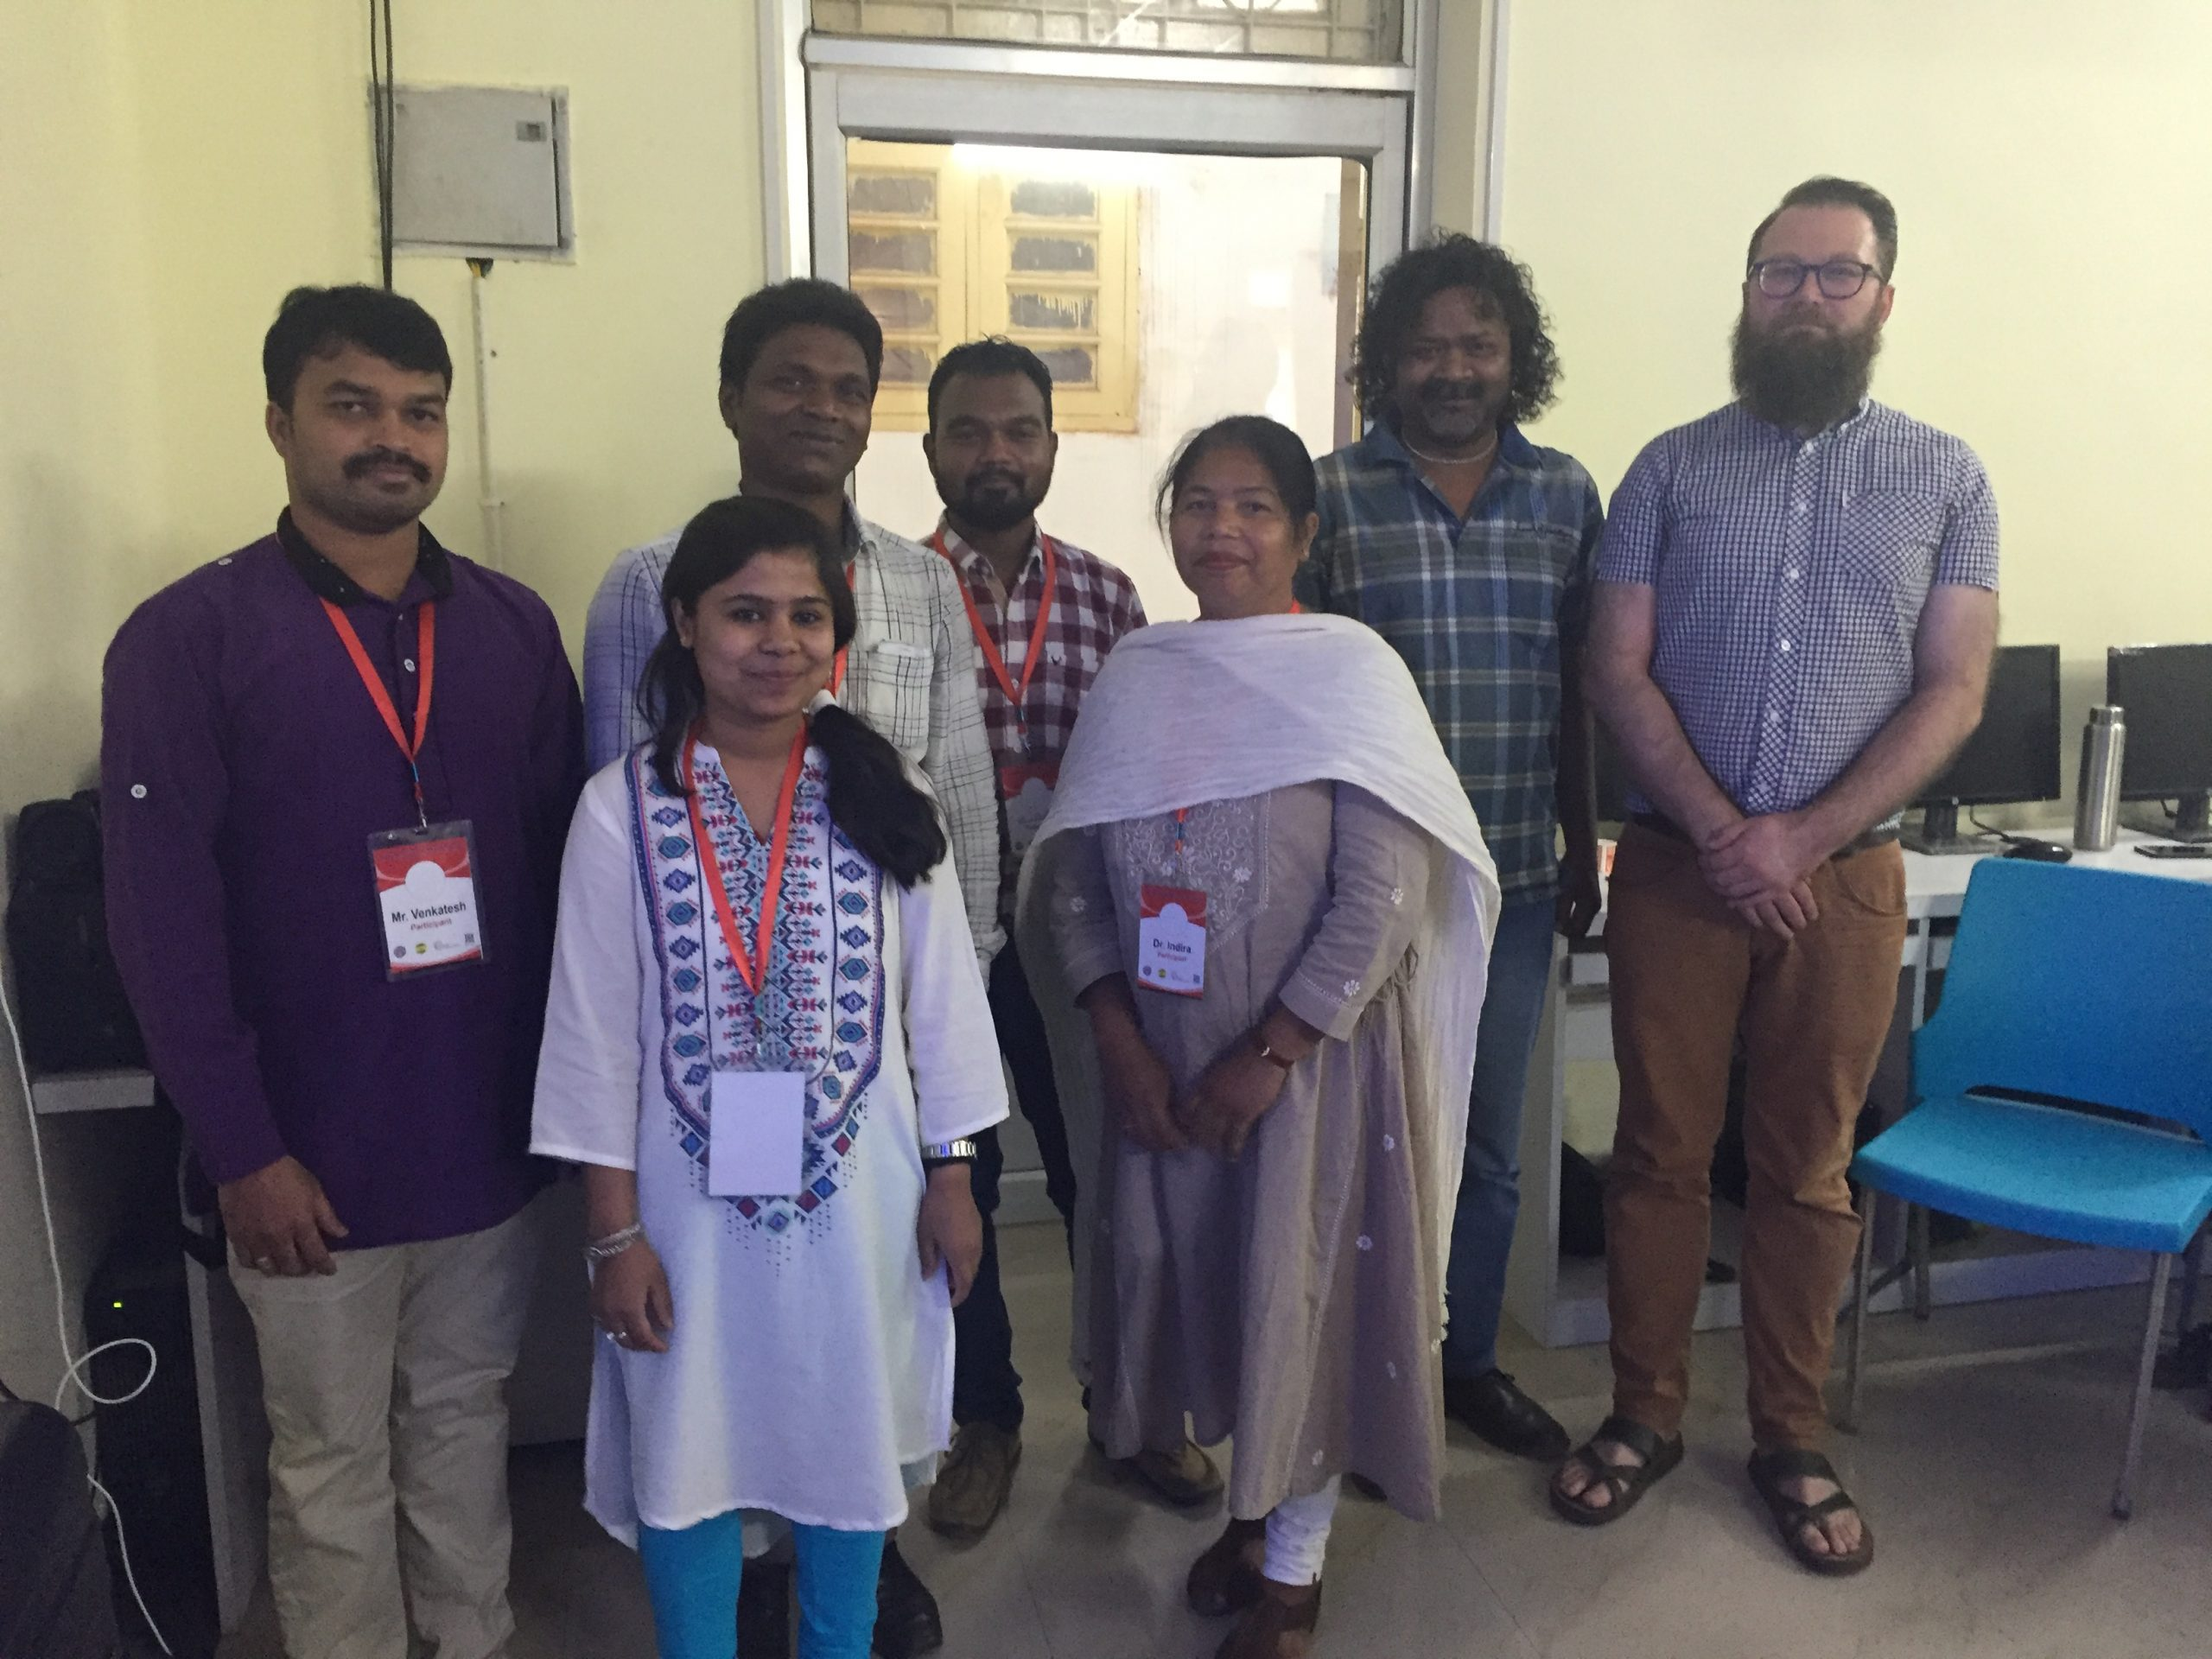 Felix Rau with participants of the documentation training in Ranchi, including Dr. Indira Birua from Ranchi University's Department of Tribal and Regional Languages (TRL)